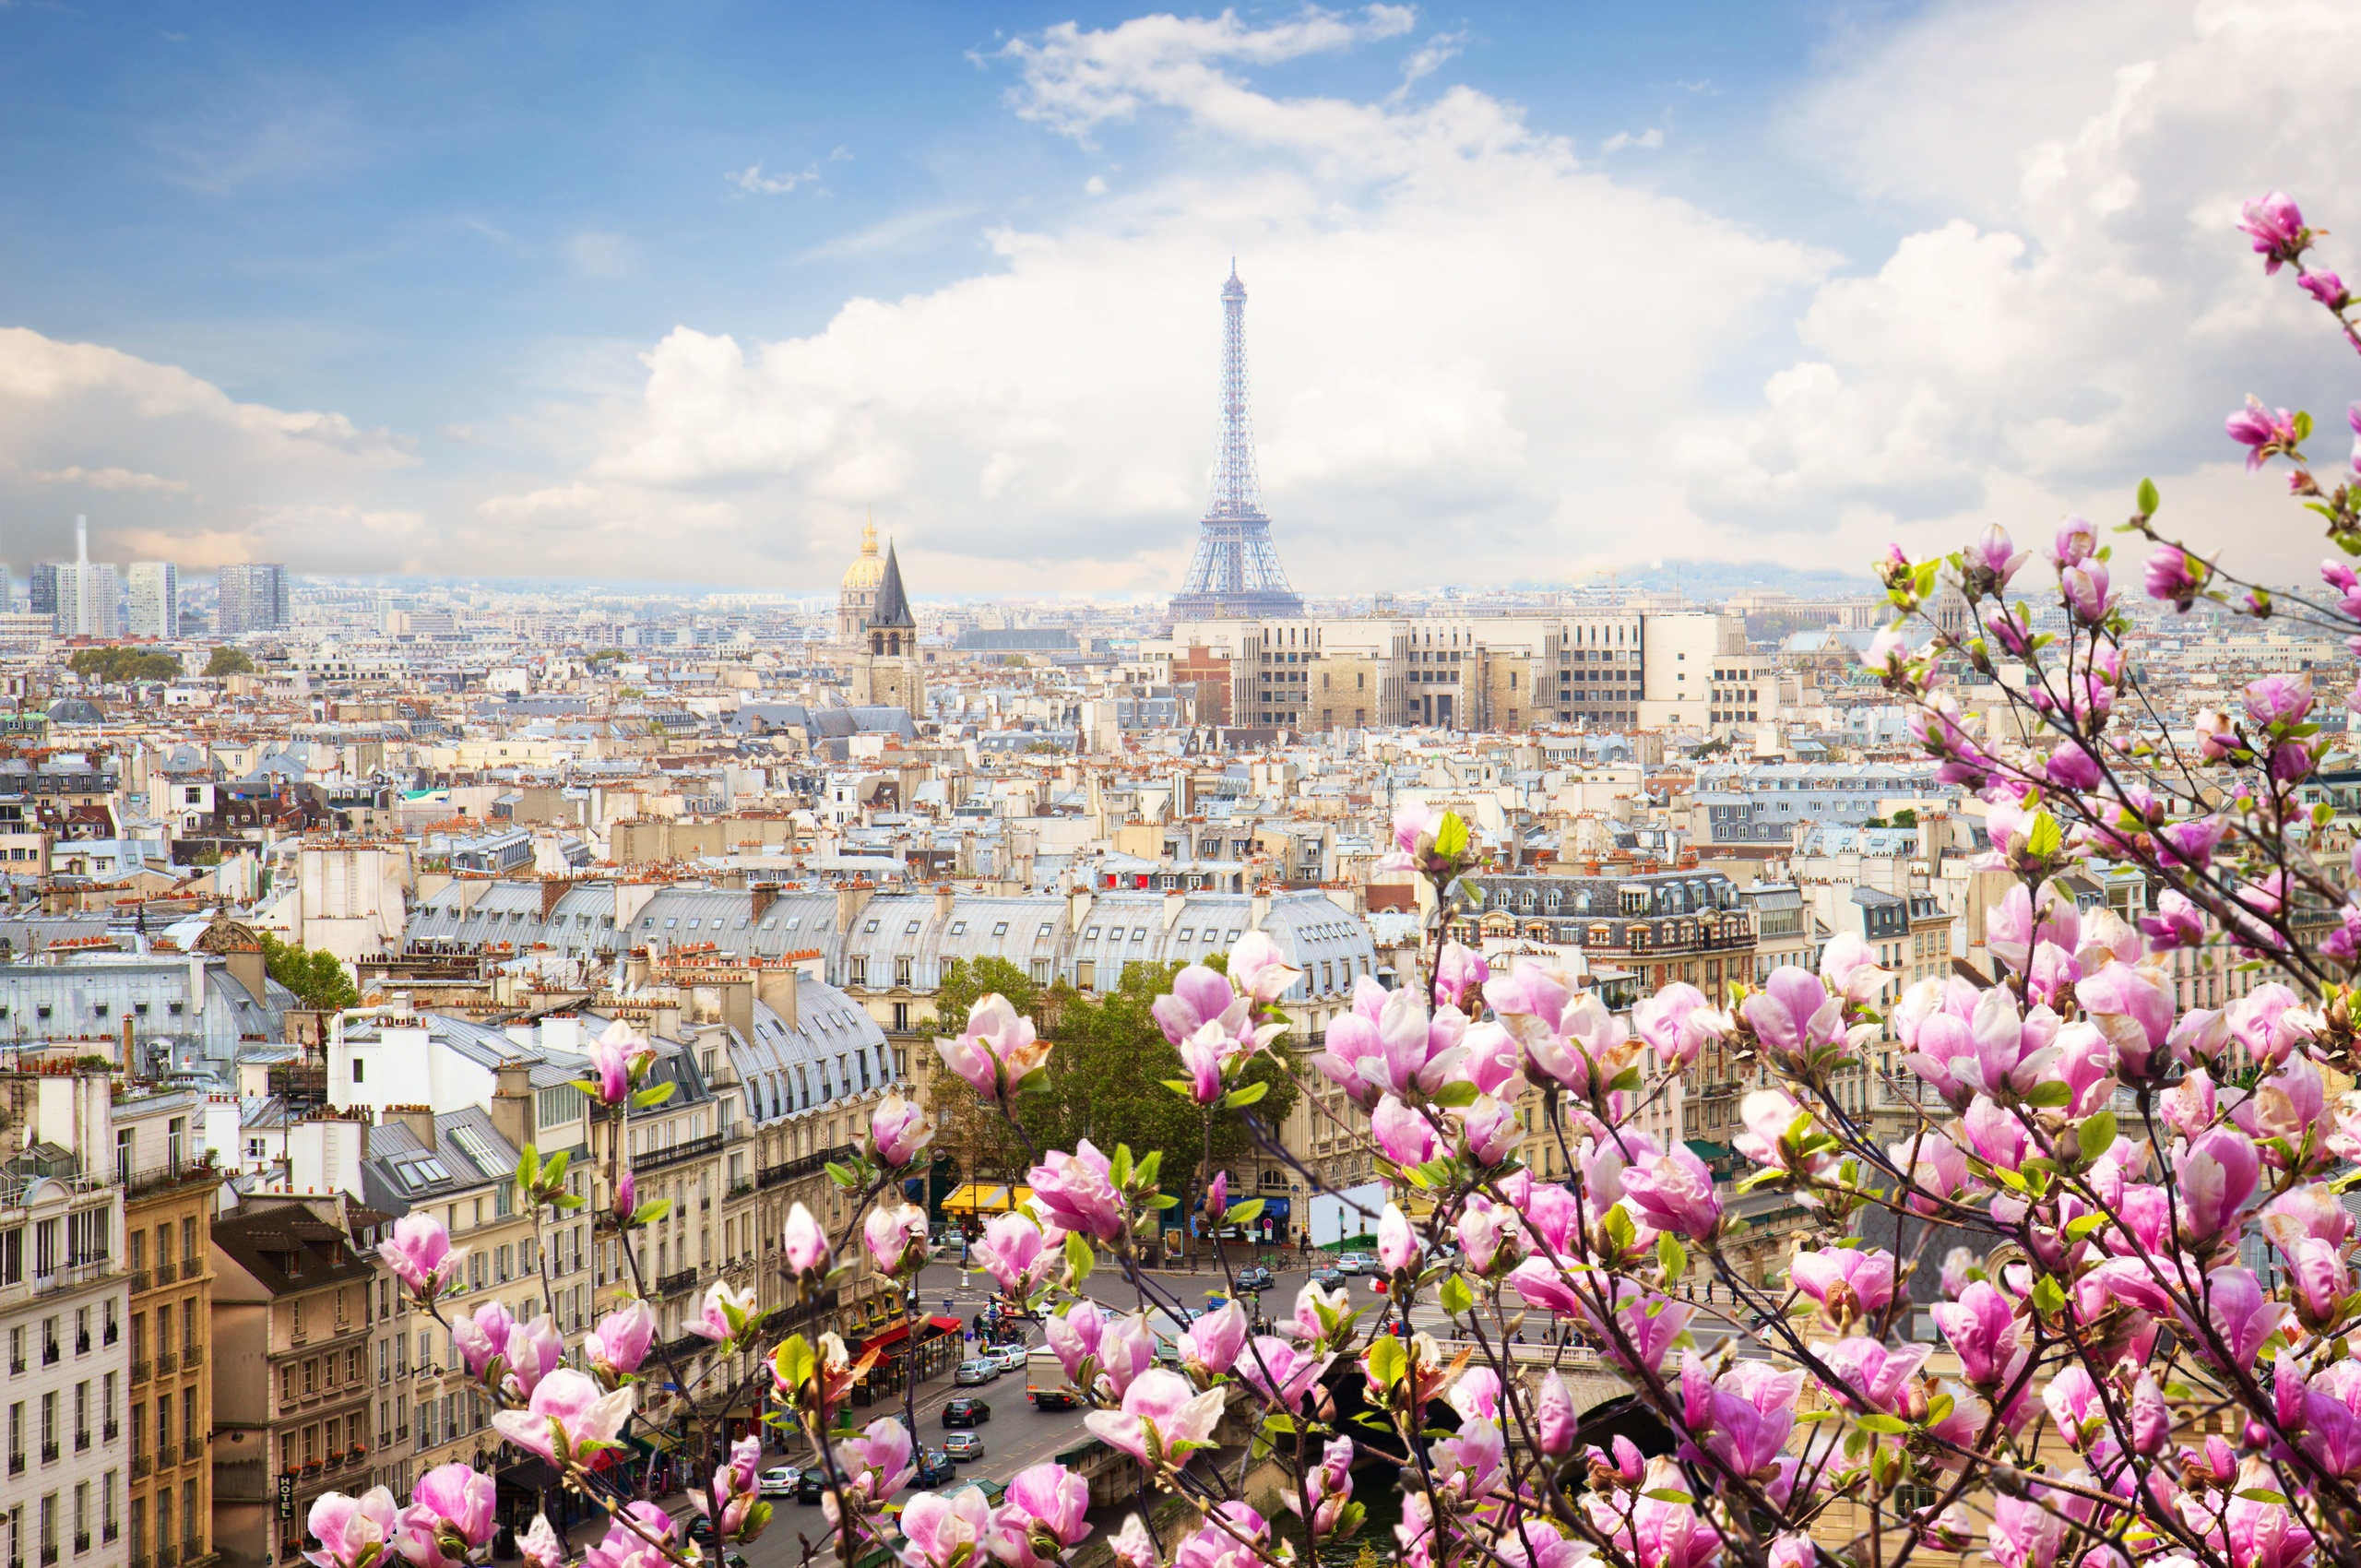 eiffel-tower-france-flowers-beautiful-4k-mg.jpg